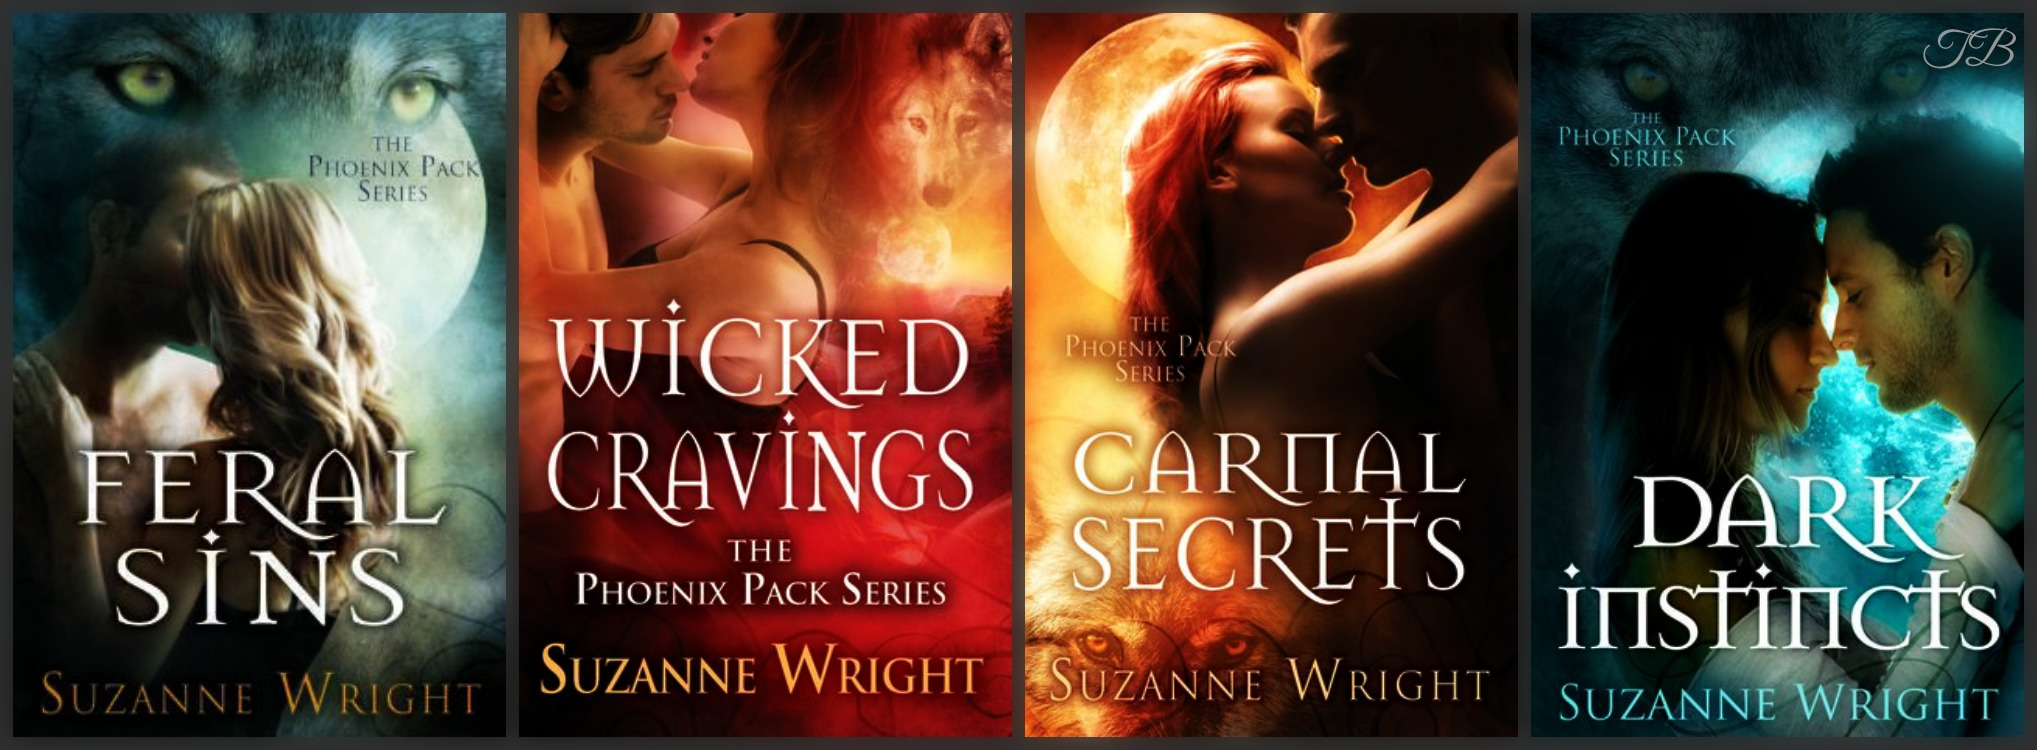 FERAL SINS (The Phoenix Pack Book One) by Suzanne Wright